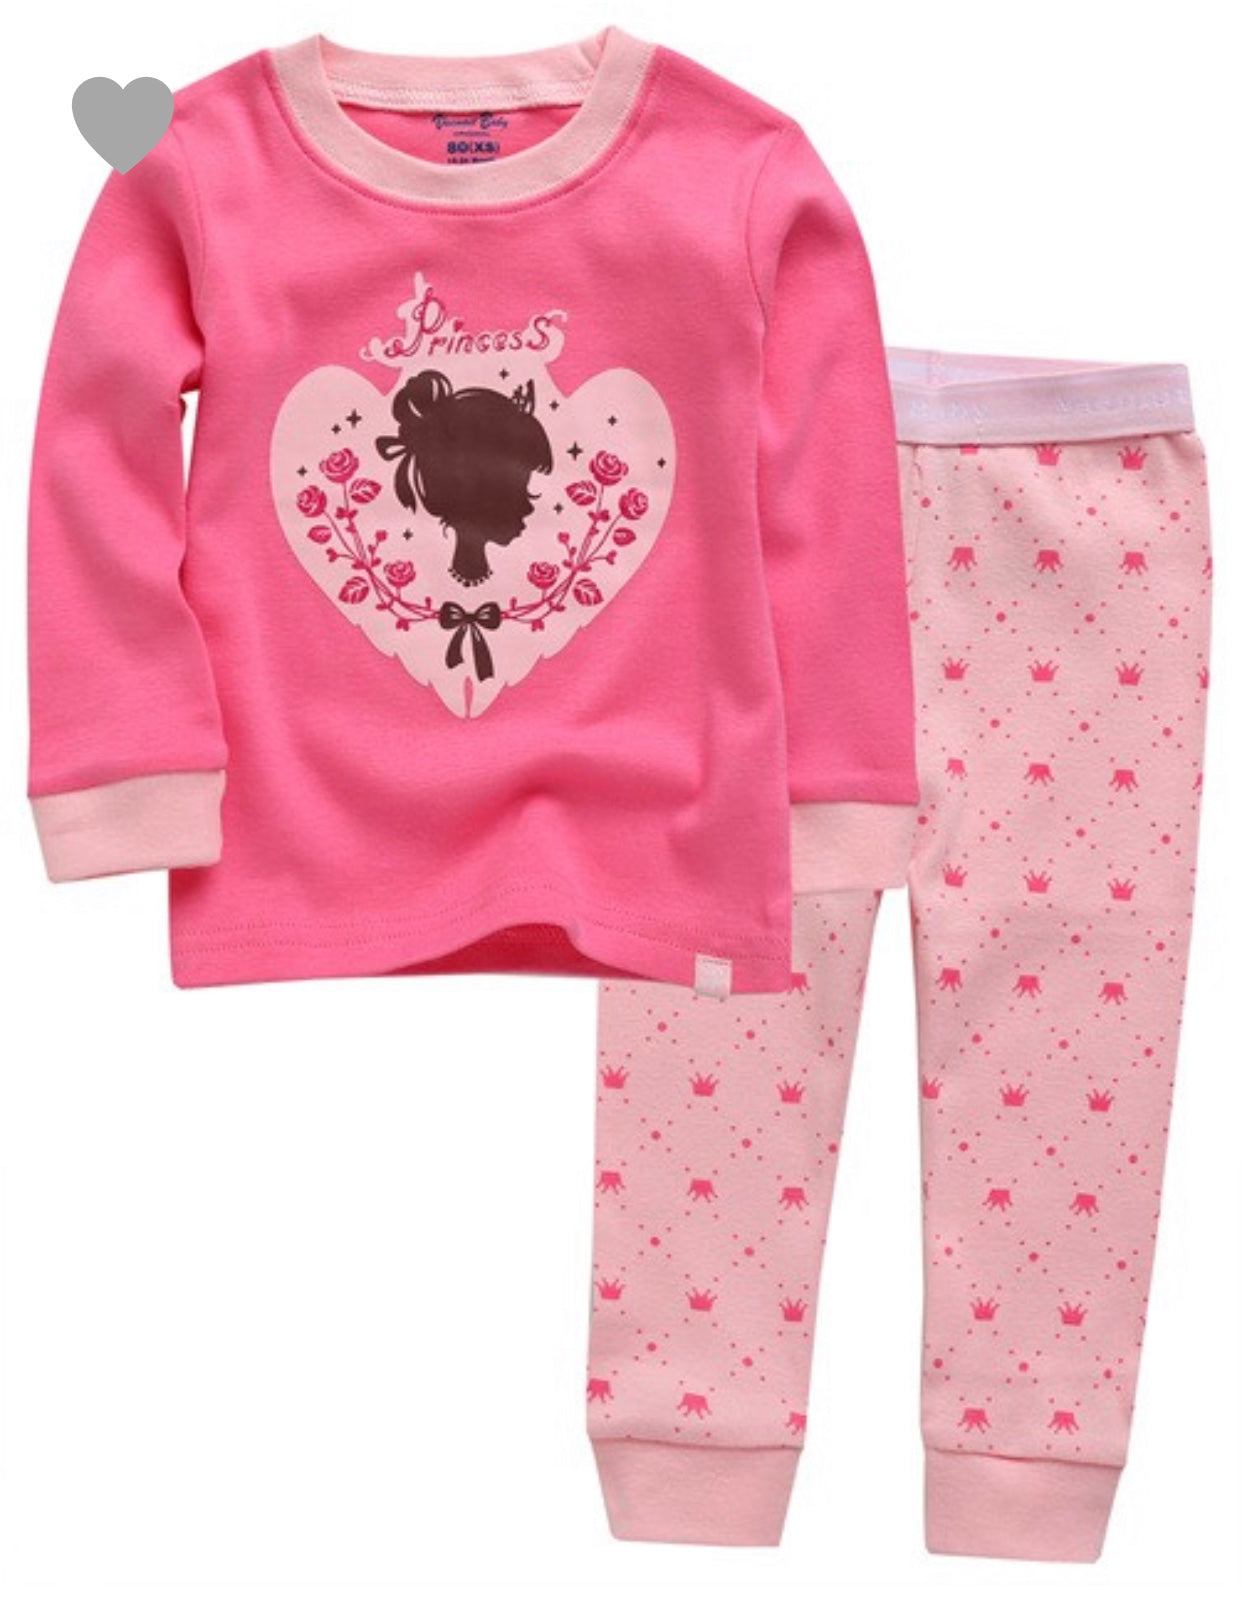 KIDS Princess jammie set